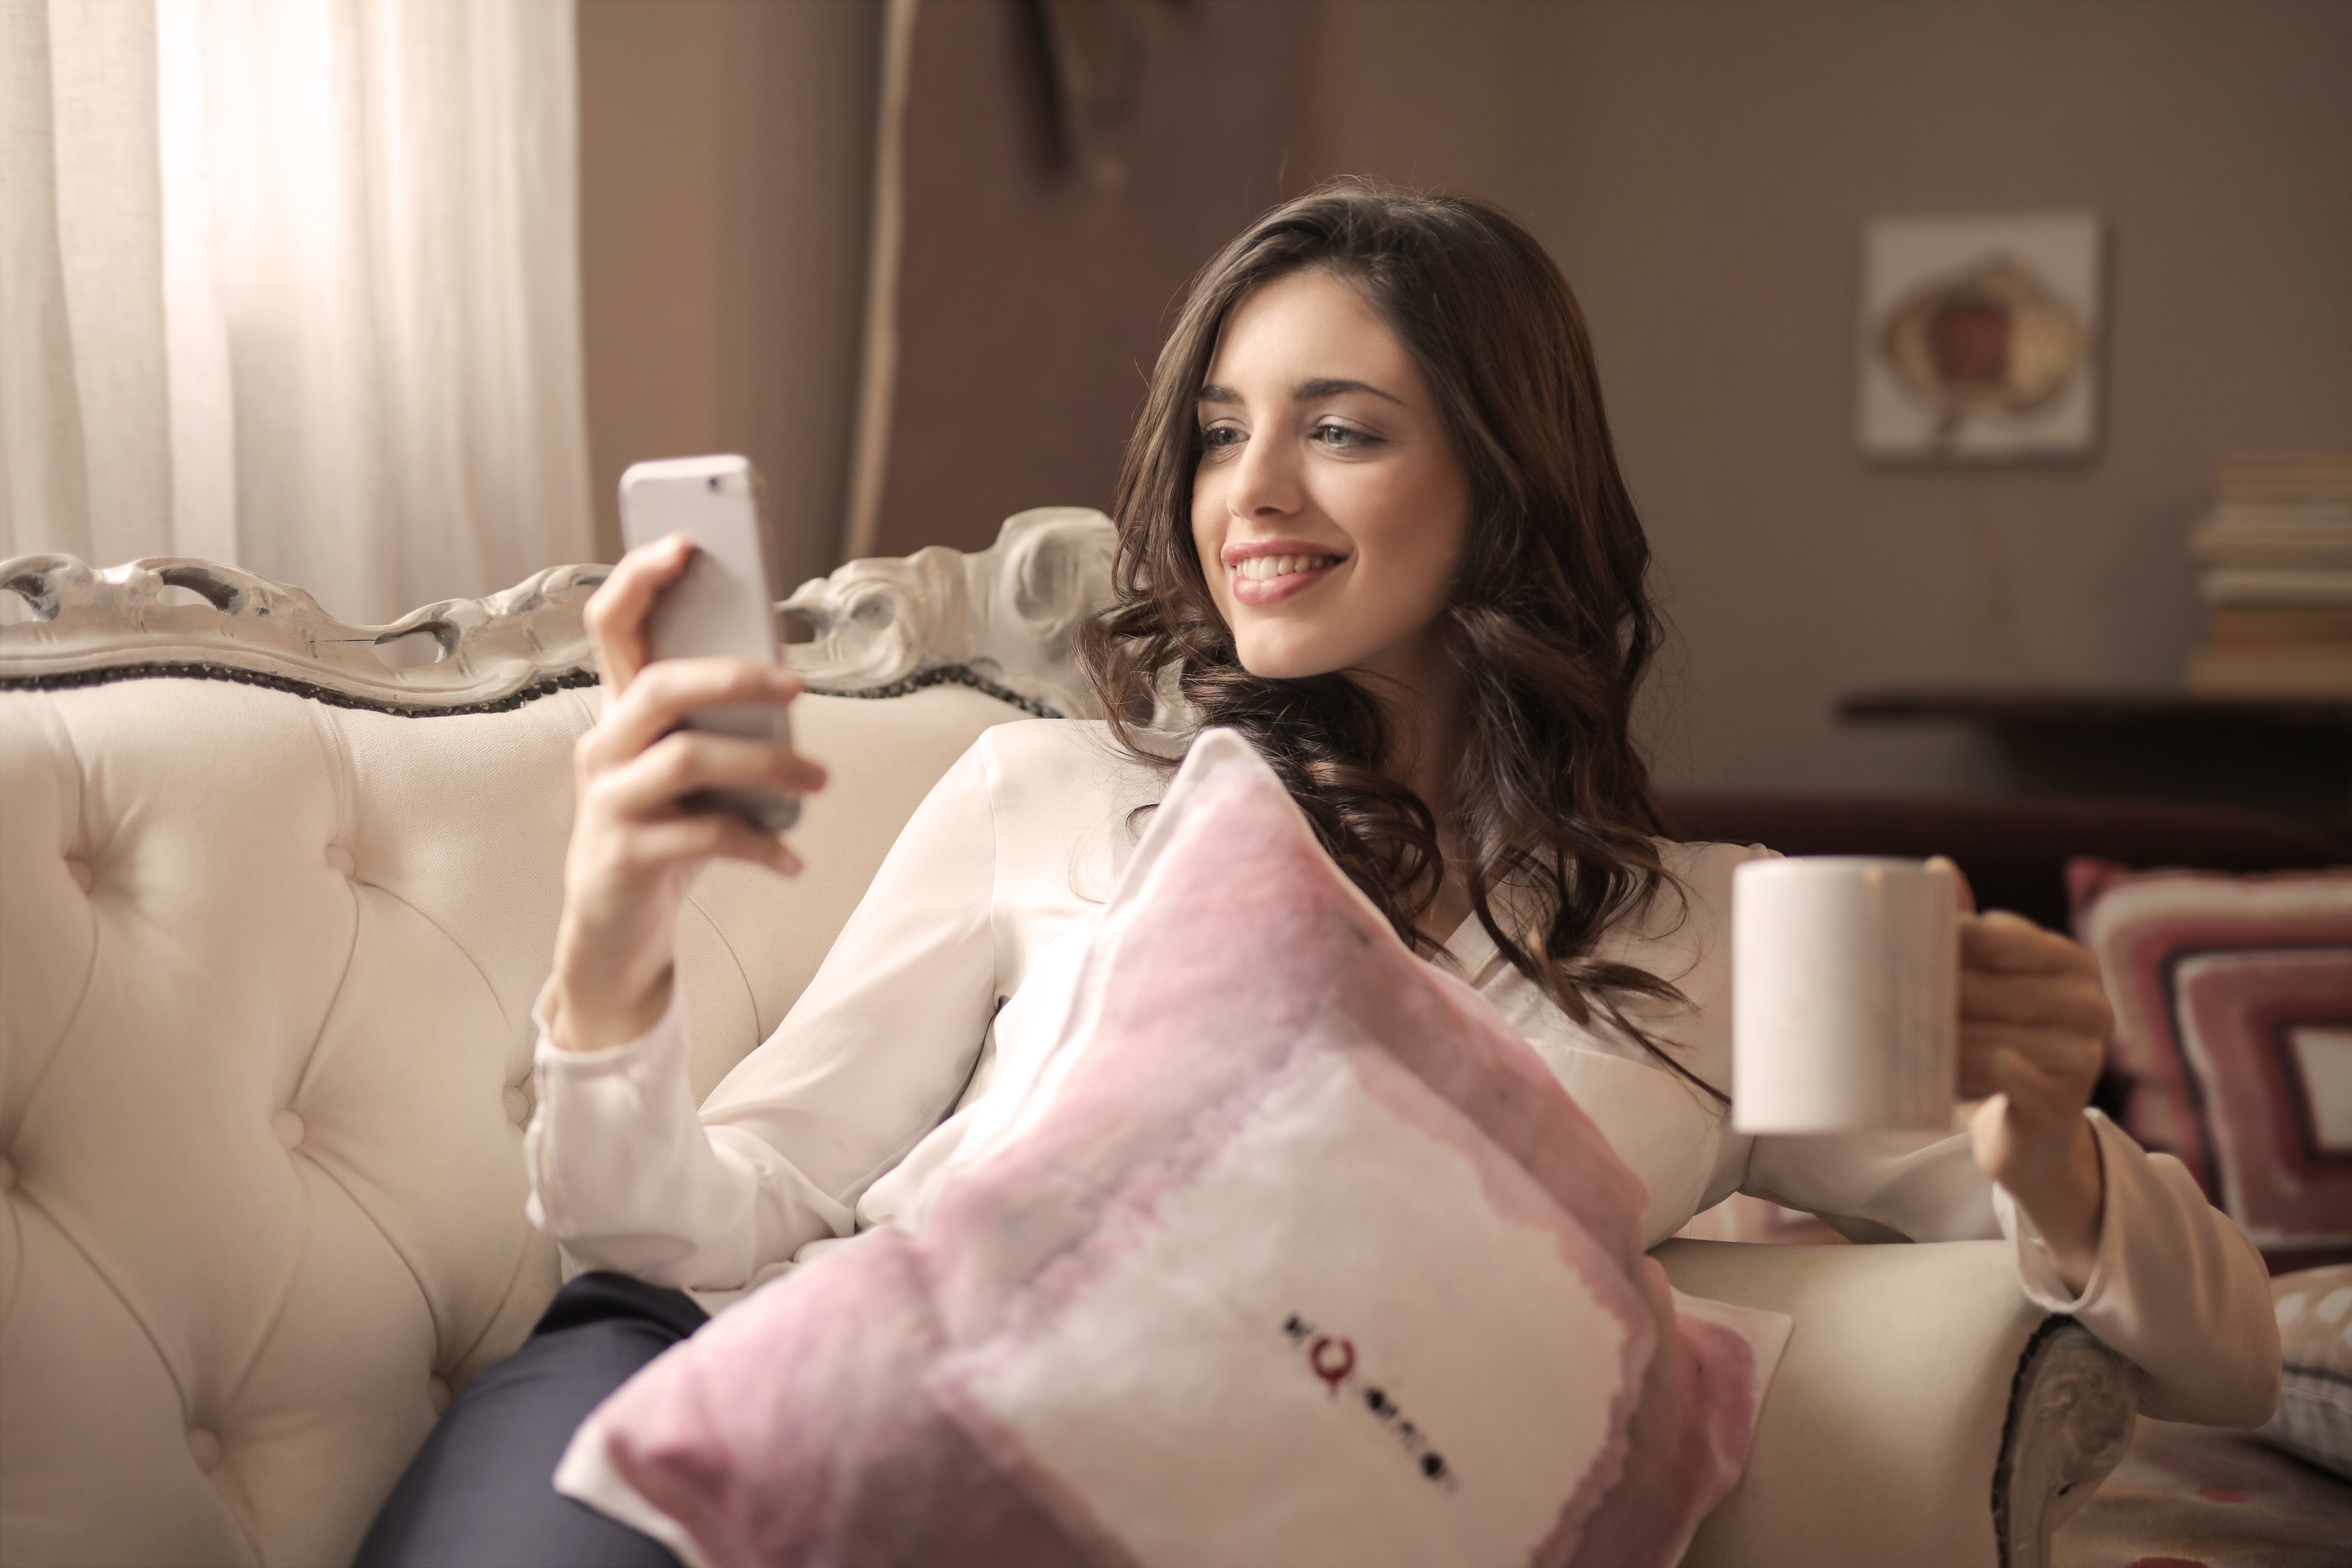 Woman in White Long-sleeved Shirt Holding Smartphone Sitting on Tufted Sofa